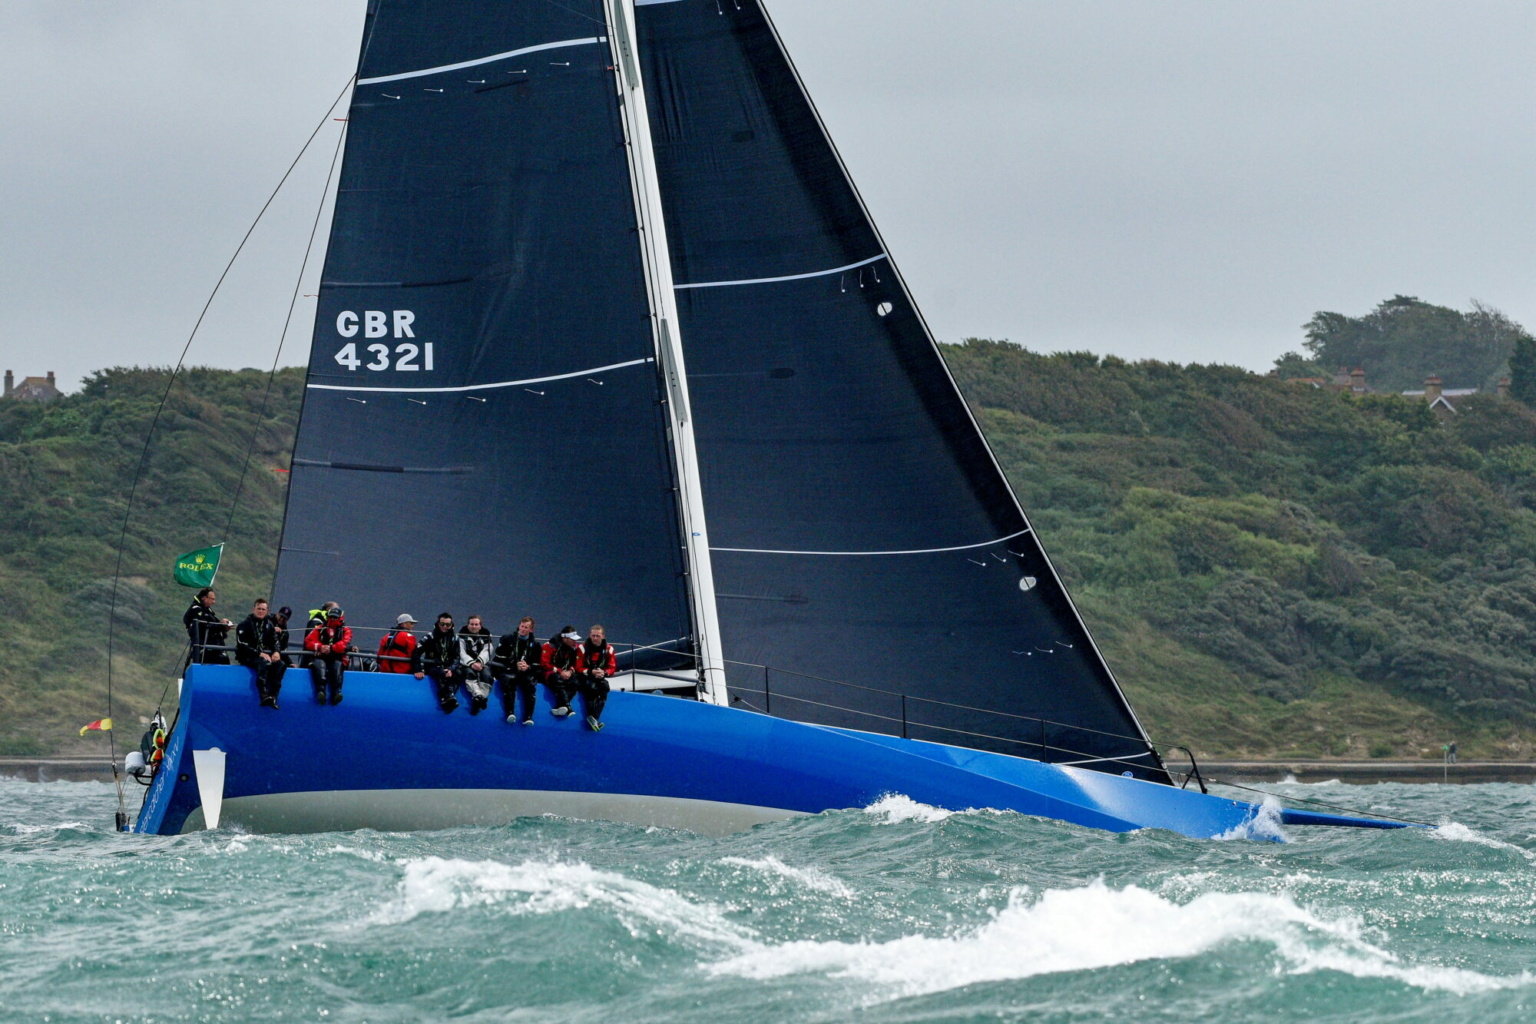 Ben Saxton on 52-foot Oystercatcher at the start of the Rolex Fastnet Race 2021